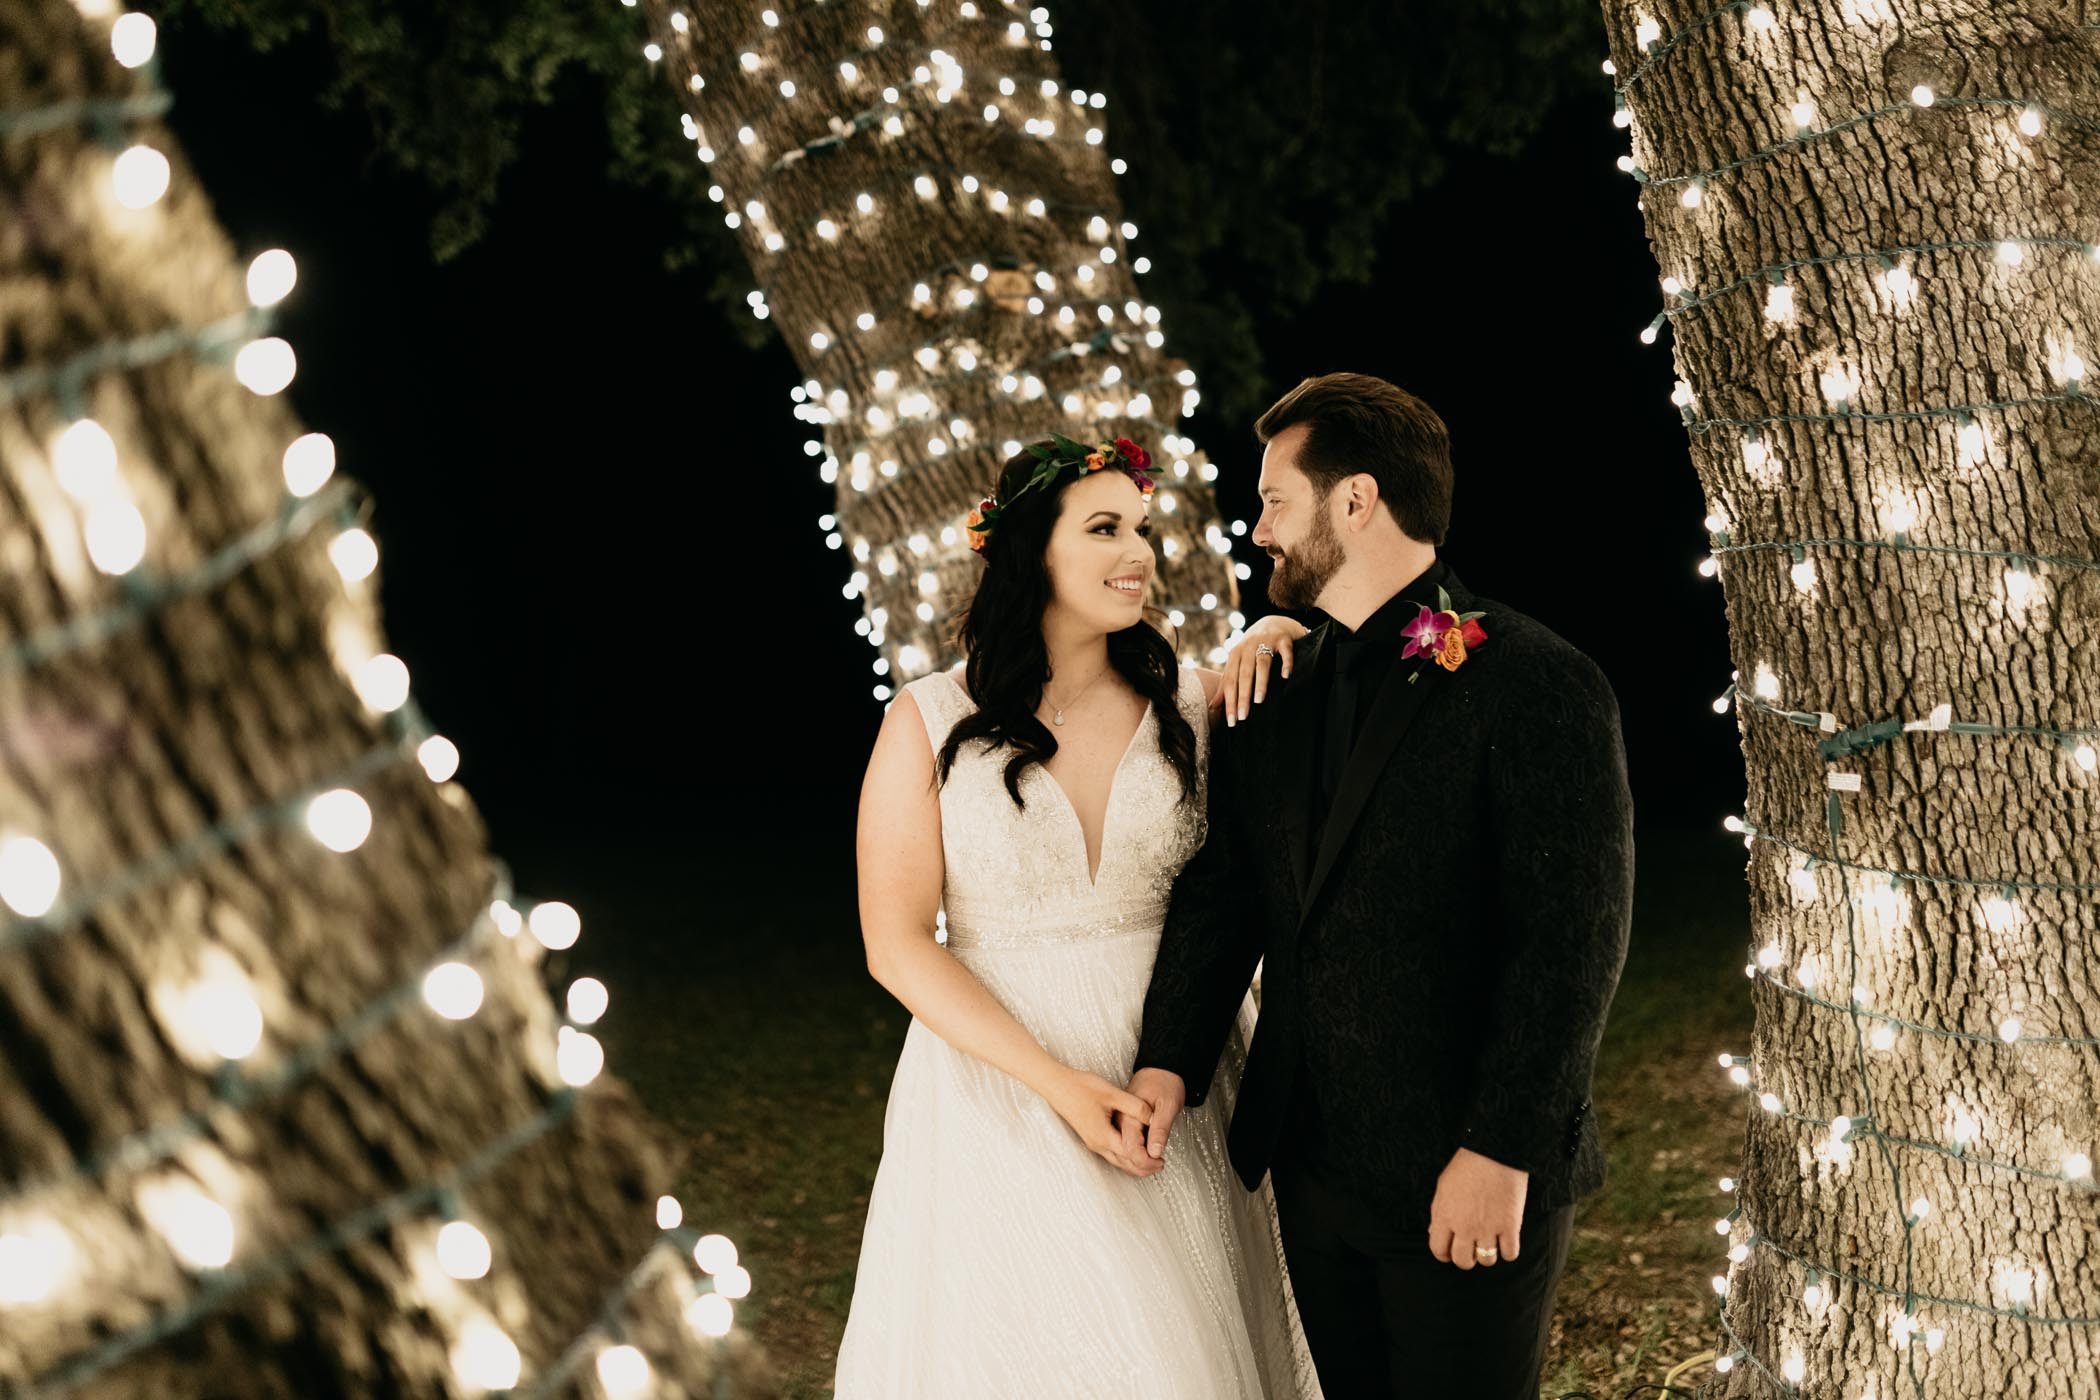 Night time wedding celebrated with string lights and close family